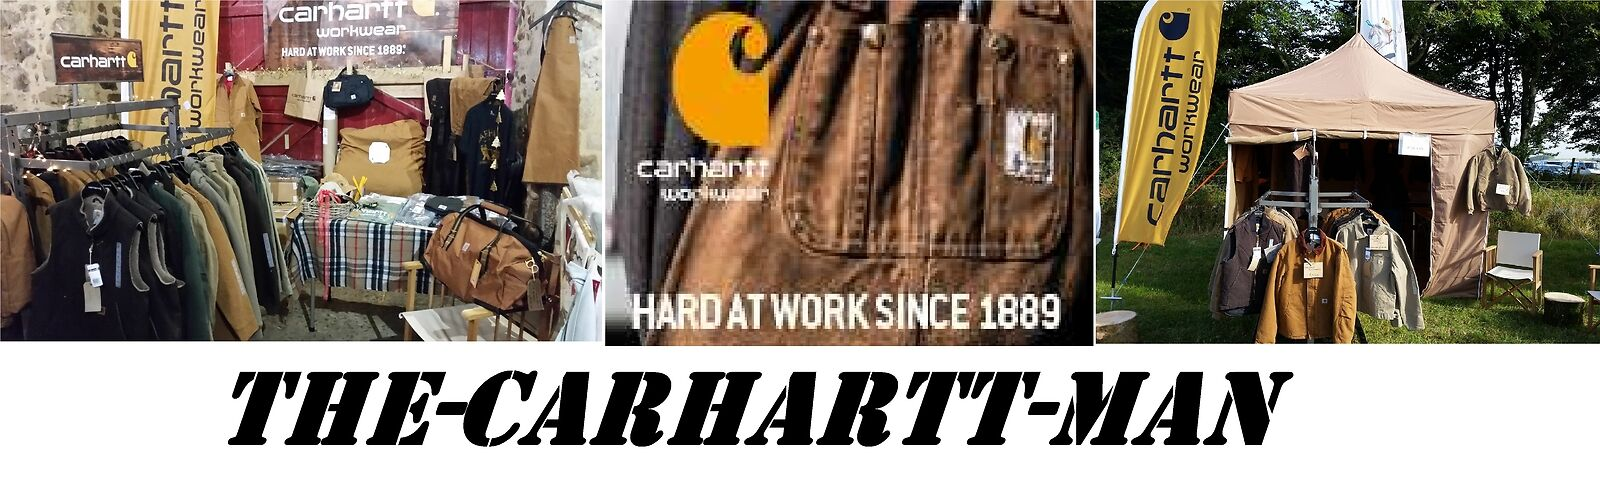 the-carhartt-man